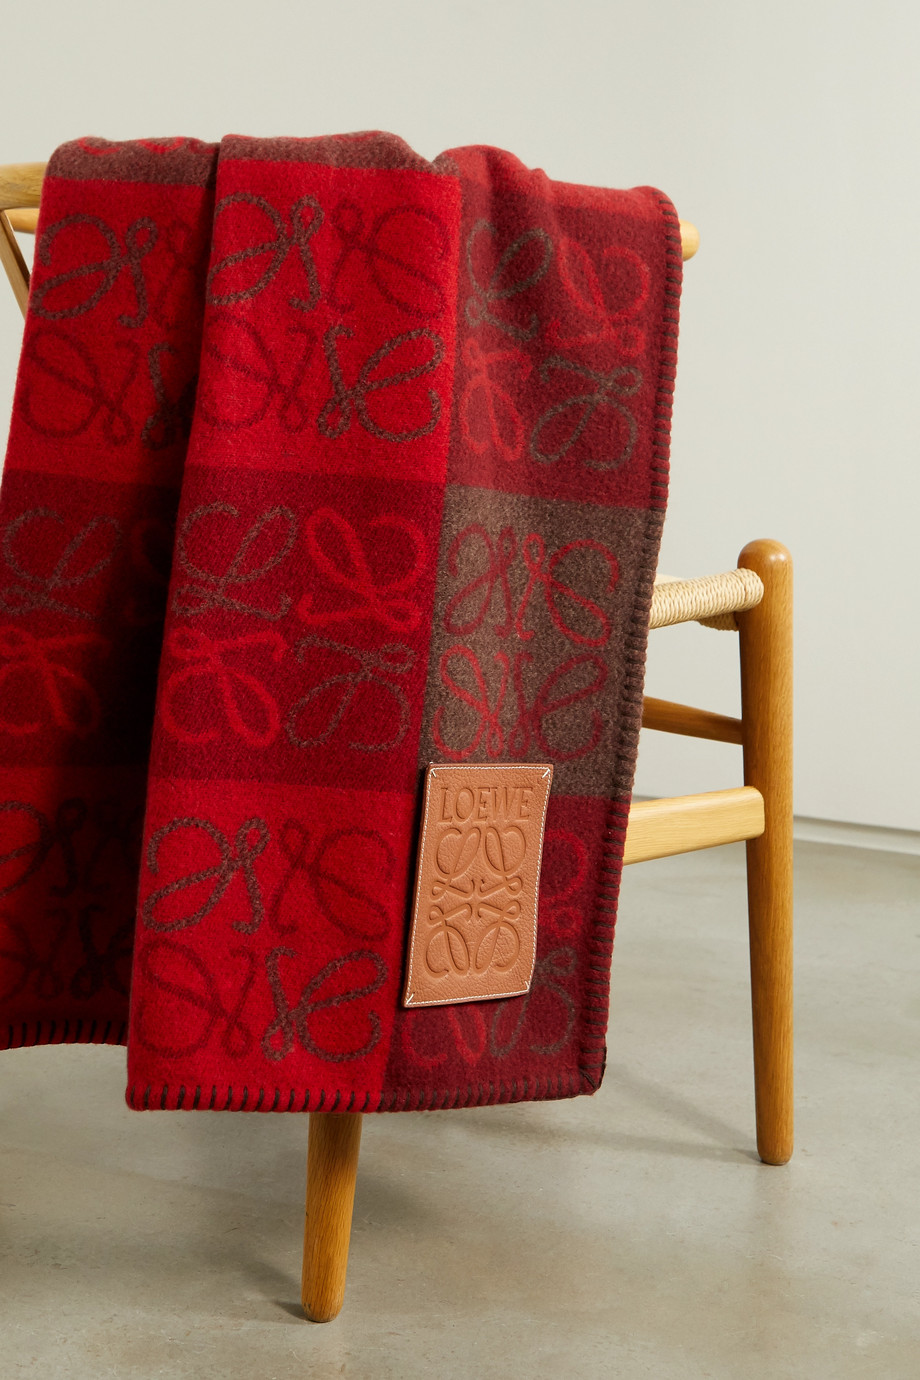 Loewe Leather-trimmed intarsia wool and cashmere-blend blanket